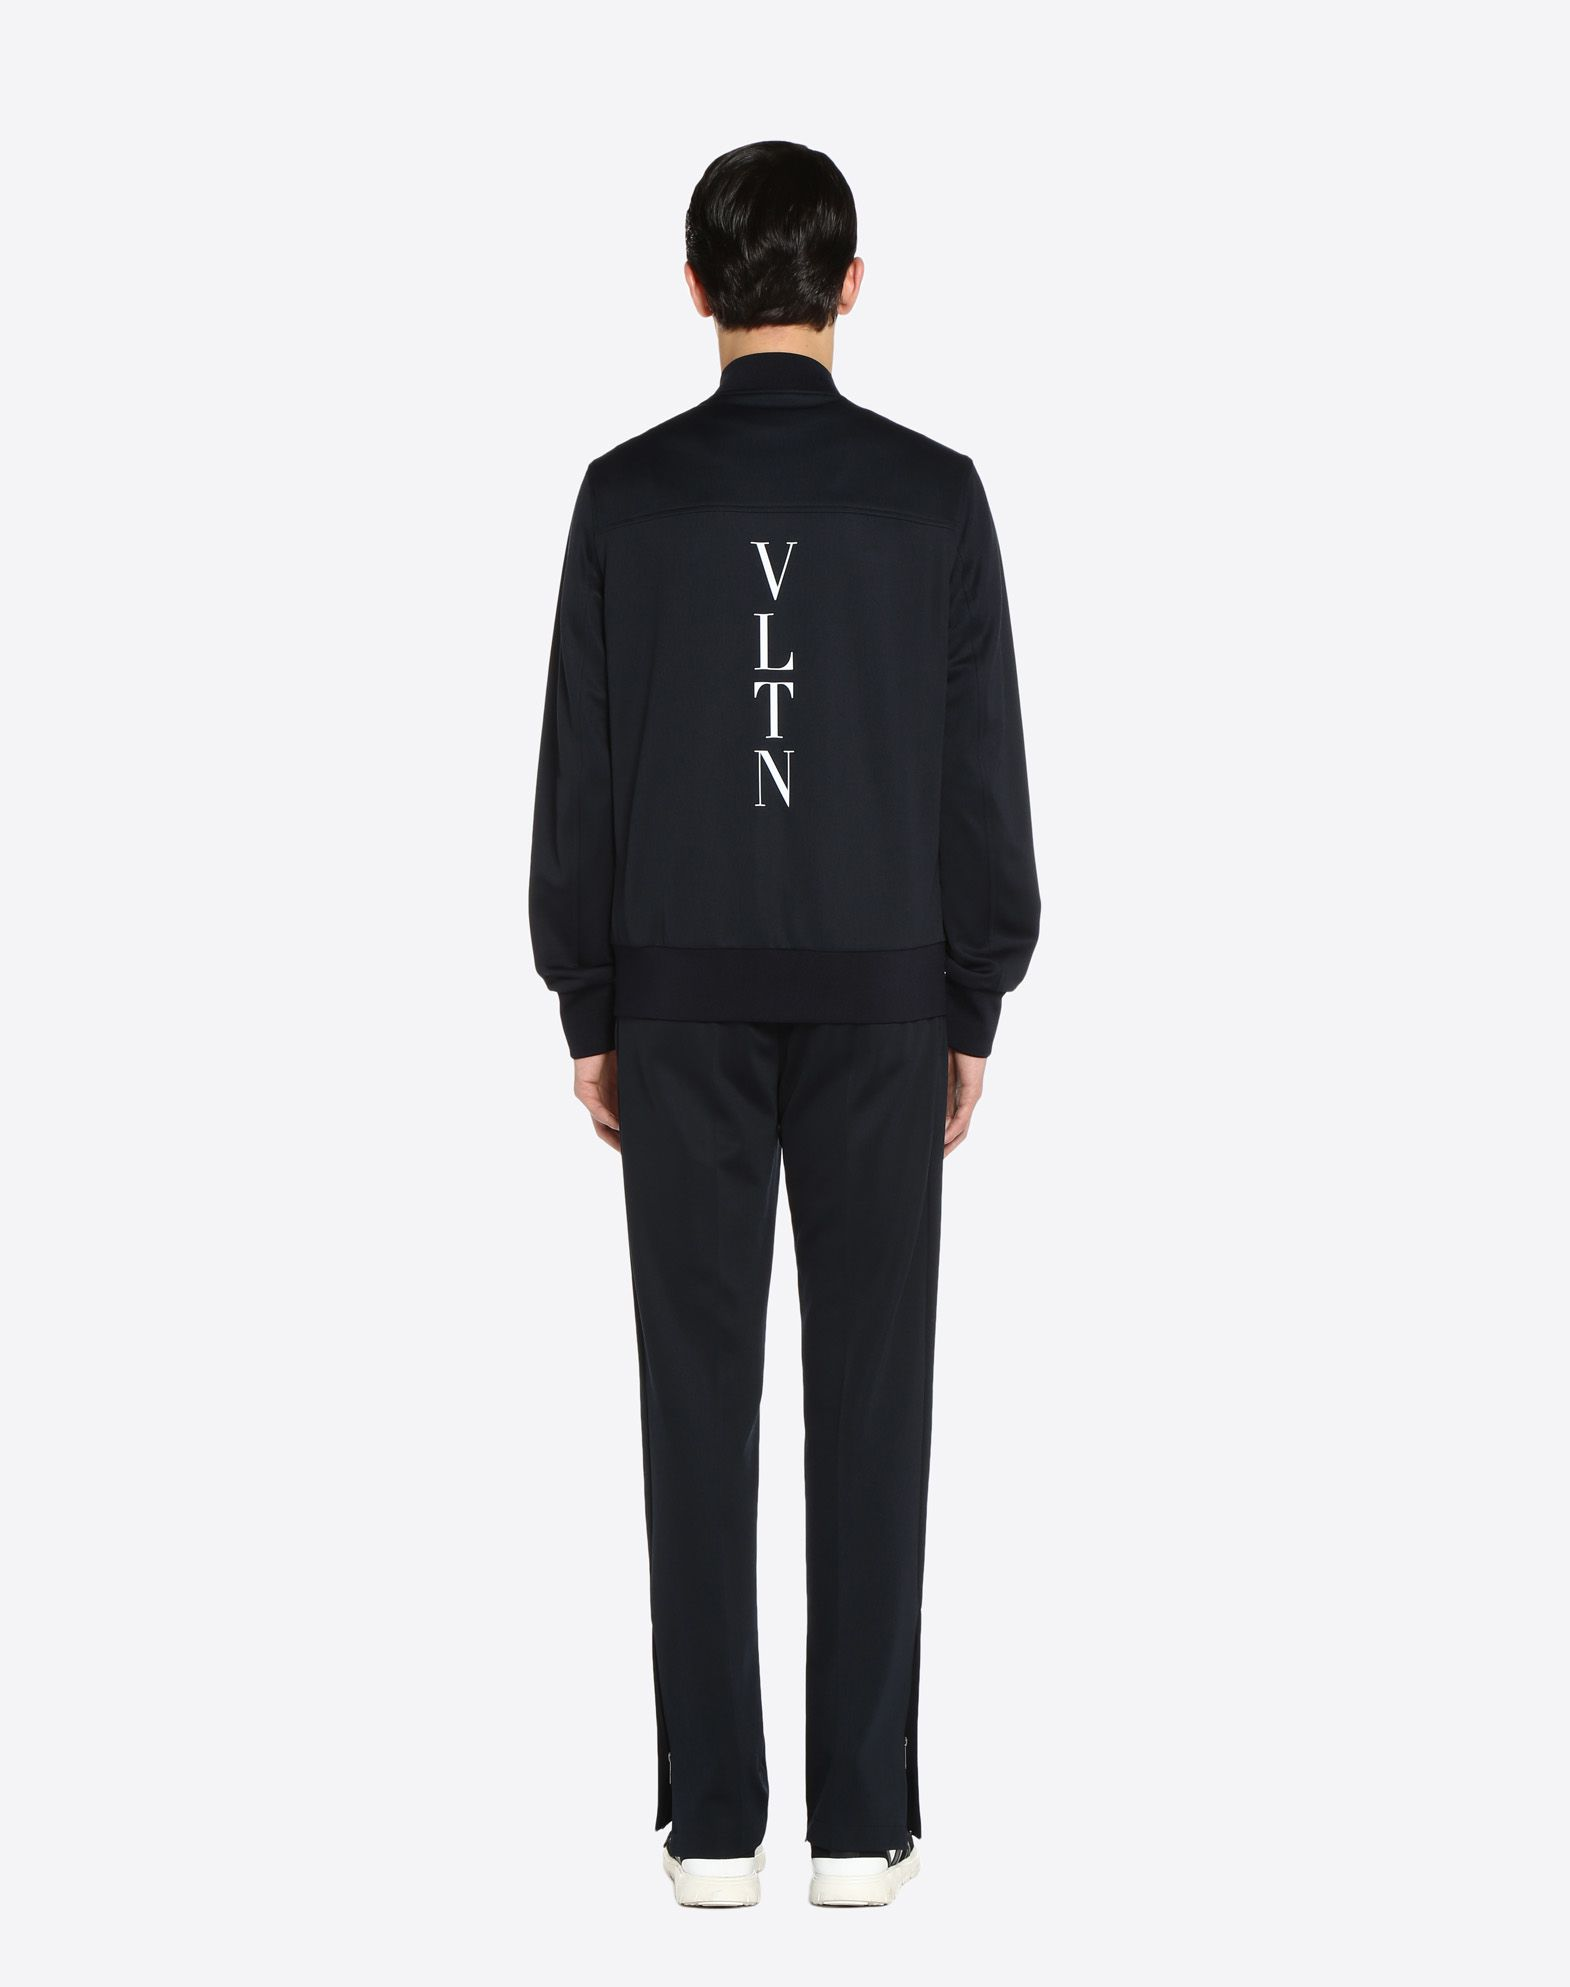 VALENTINO Vertical stripe inlays sweatshirt with VLTN logo JACKET U e